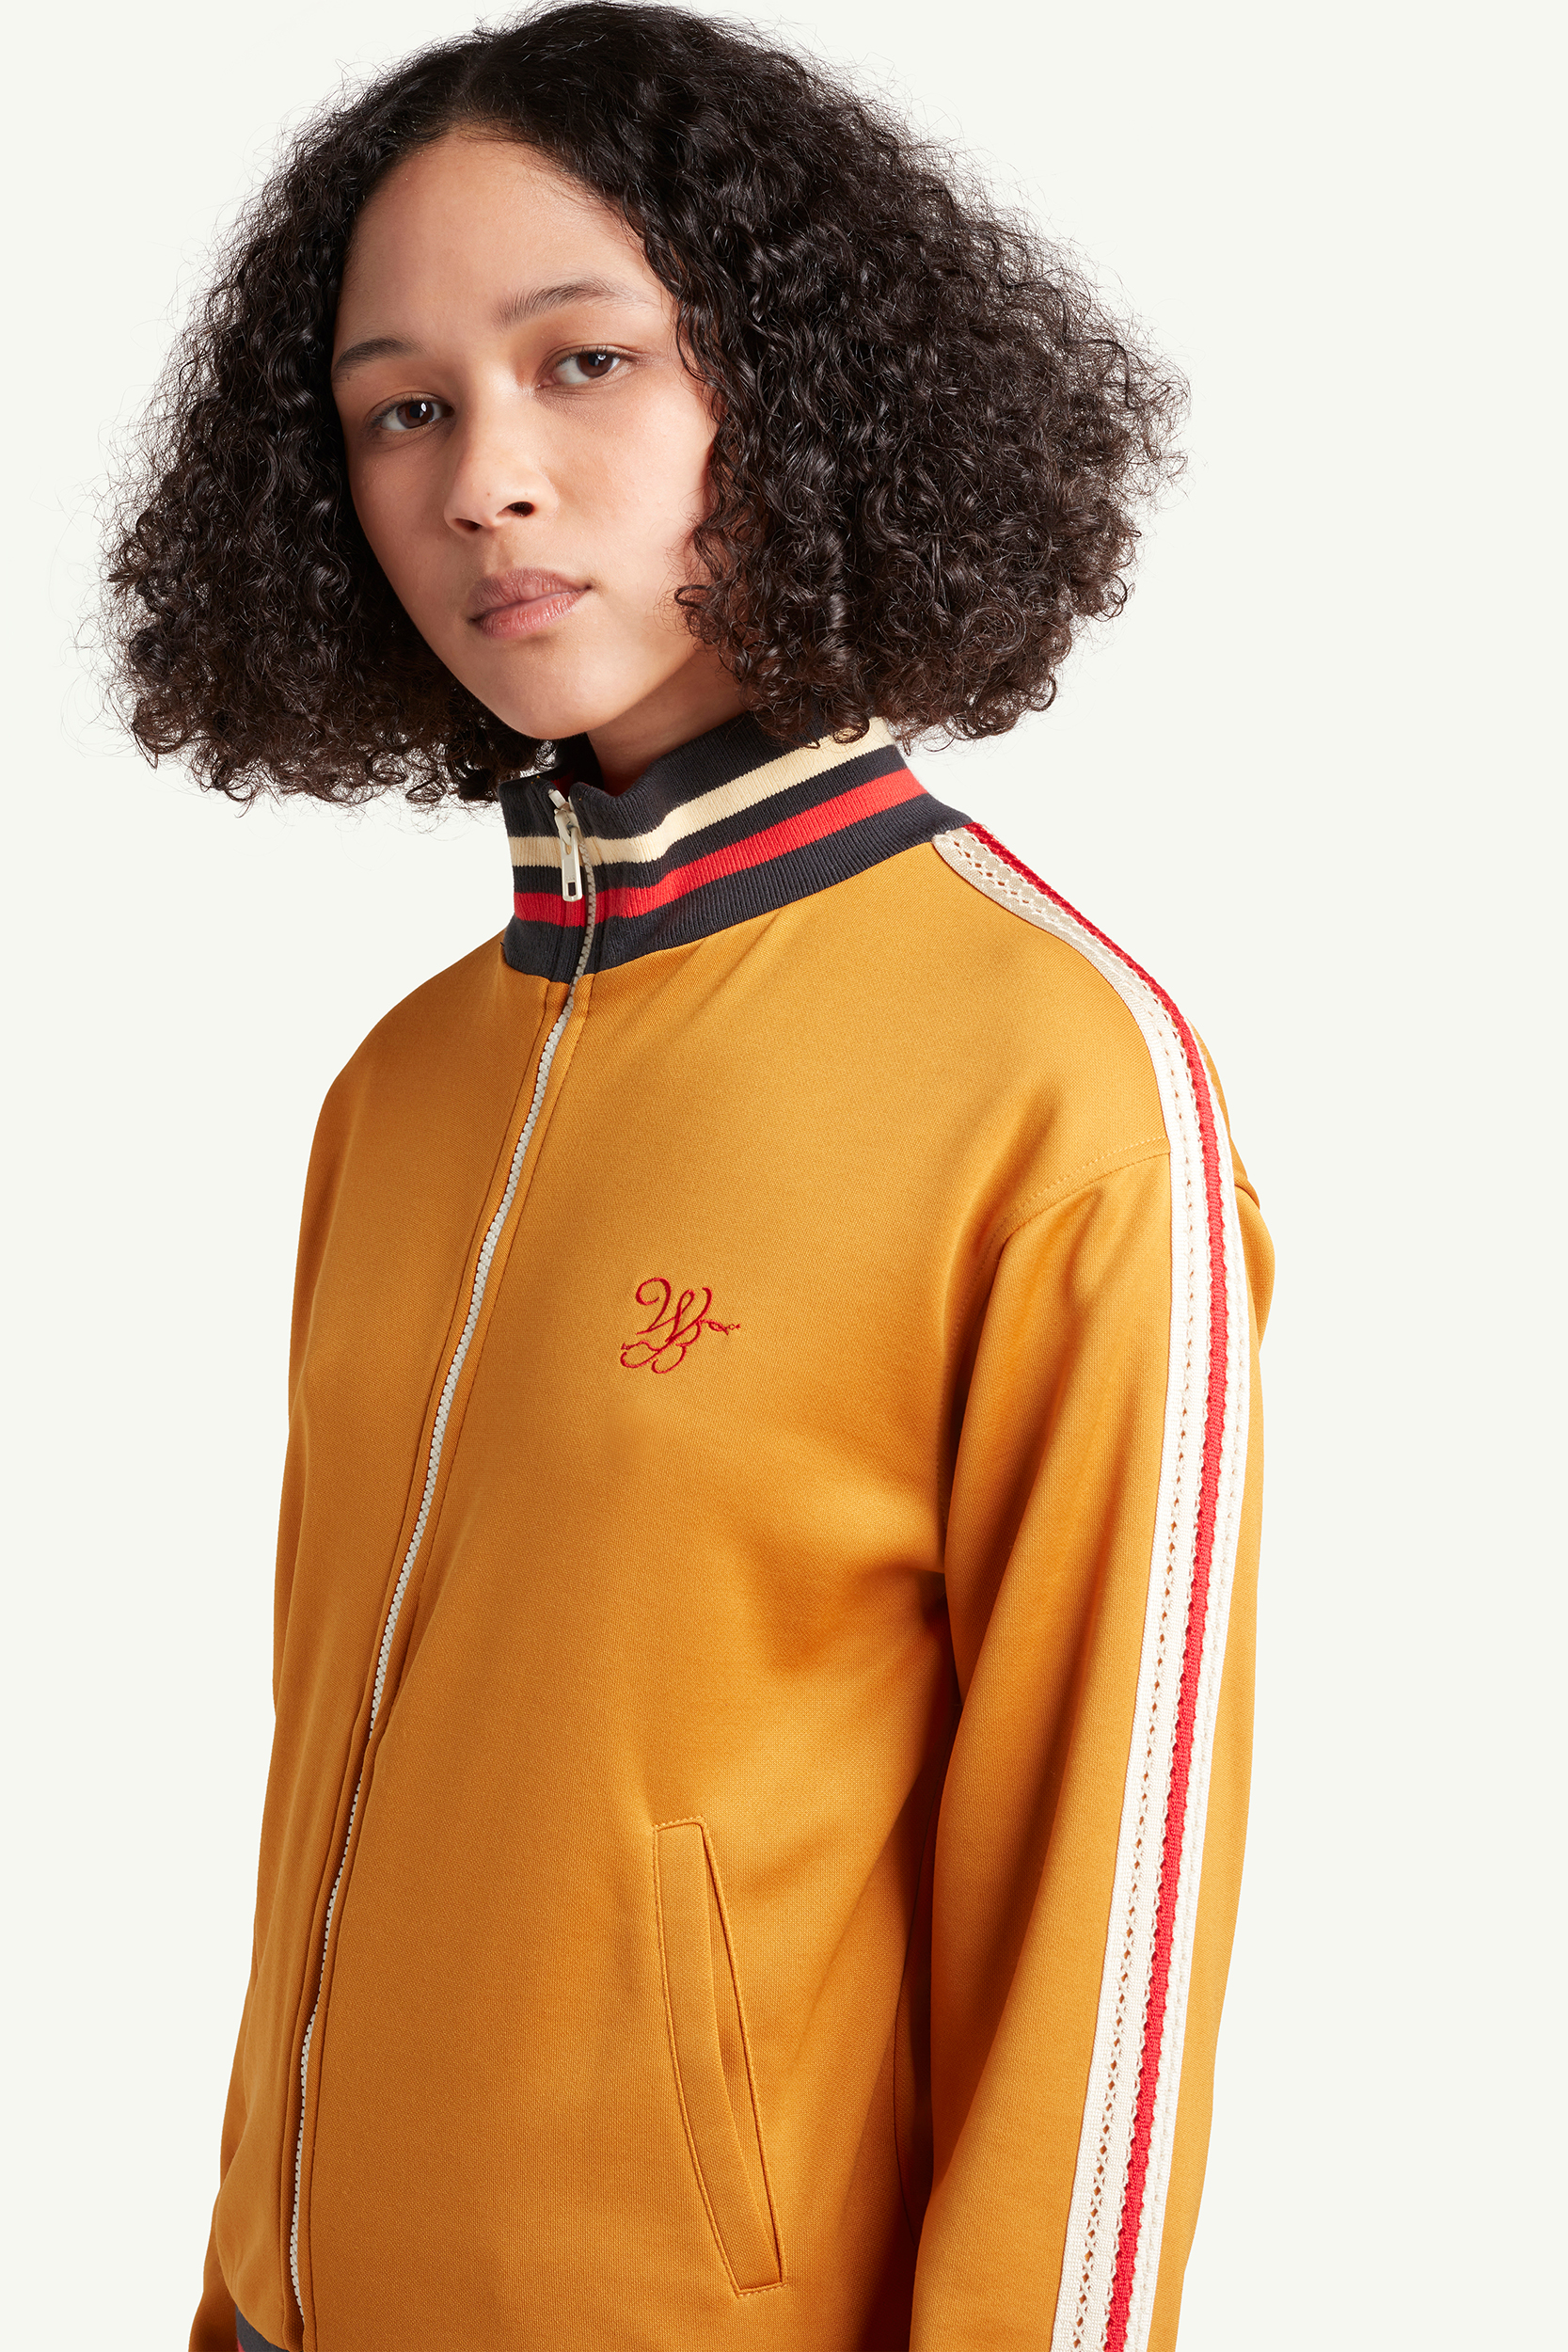 Portrait shot of a womenswear model wearing mustard yellow Wales Bonner tracksuit with red and blue line detailing